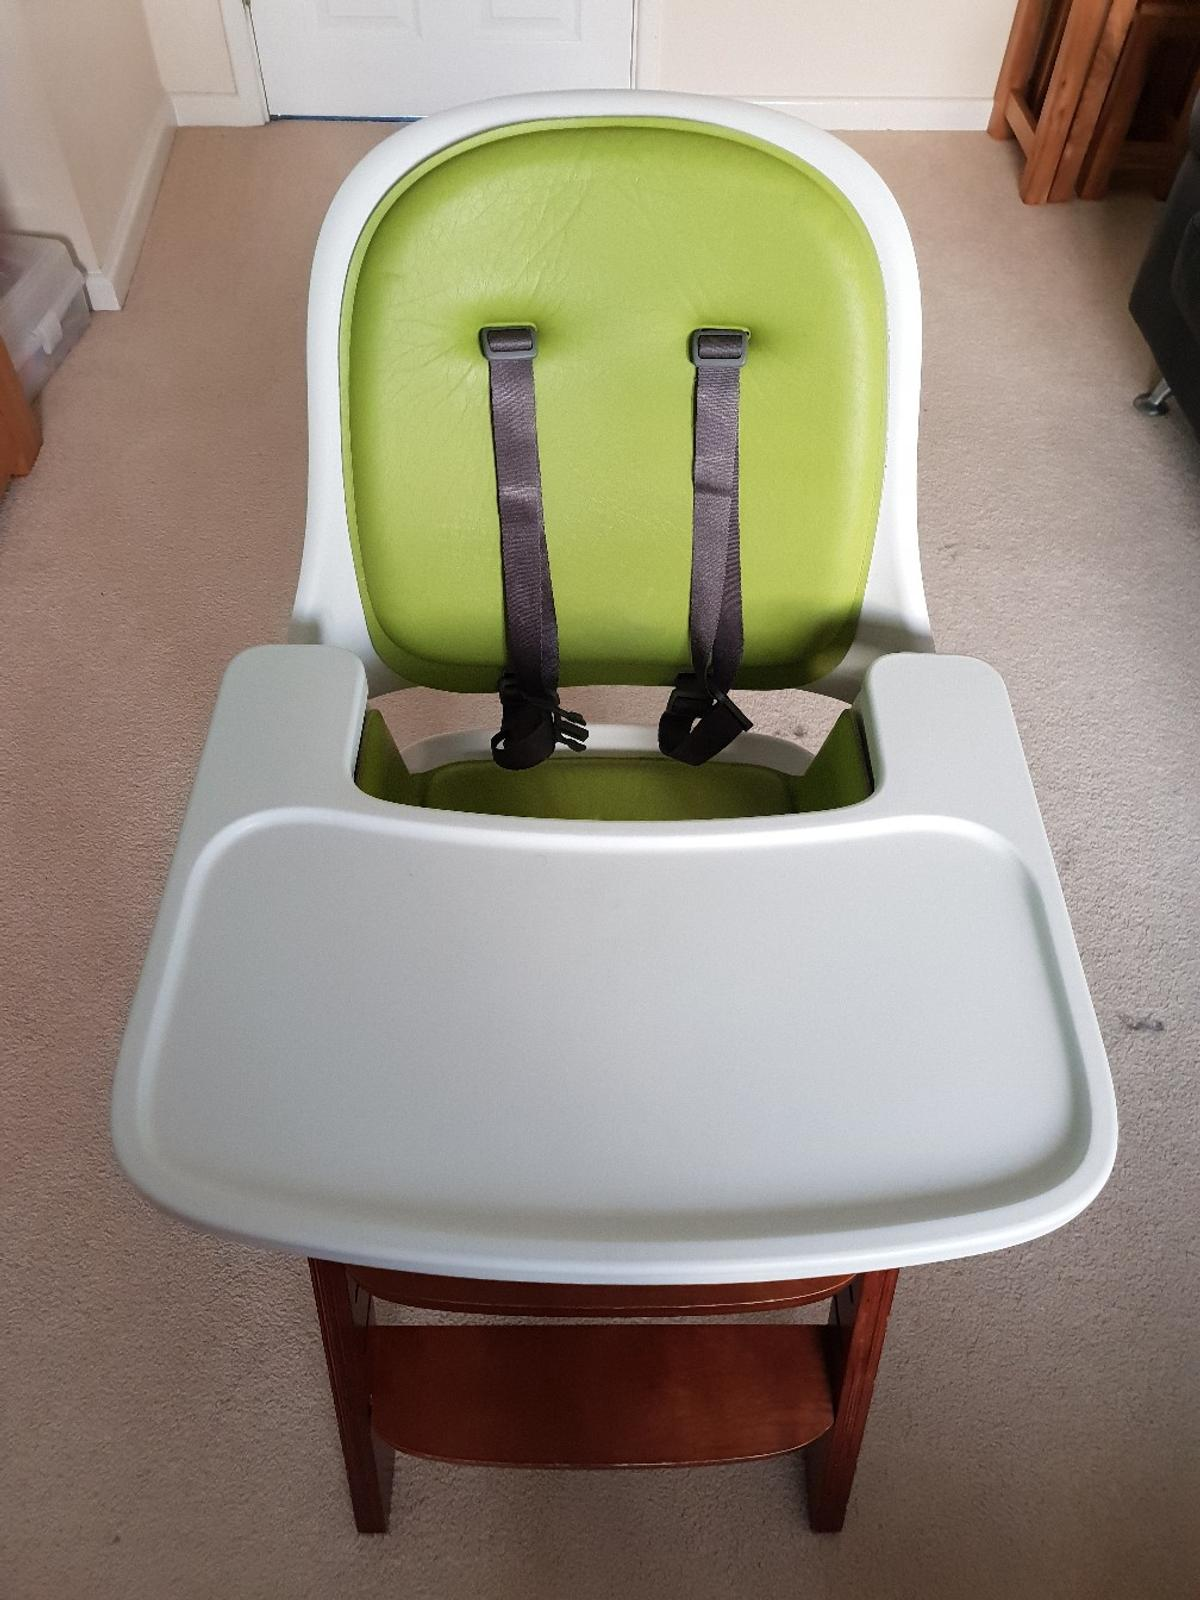 Superb Oxo Tot Spout High Chair Used Beatyapartments Chair Design Images Beatyapartmentscom